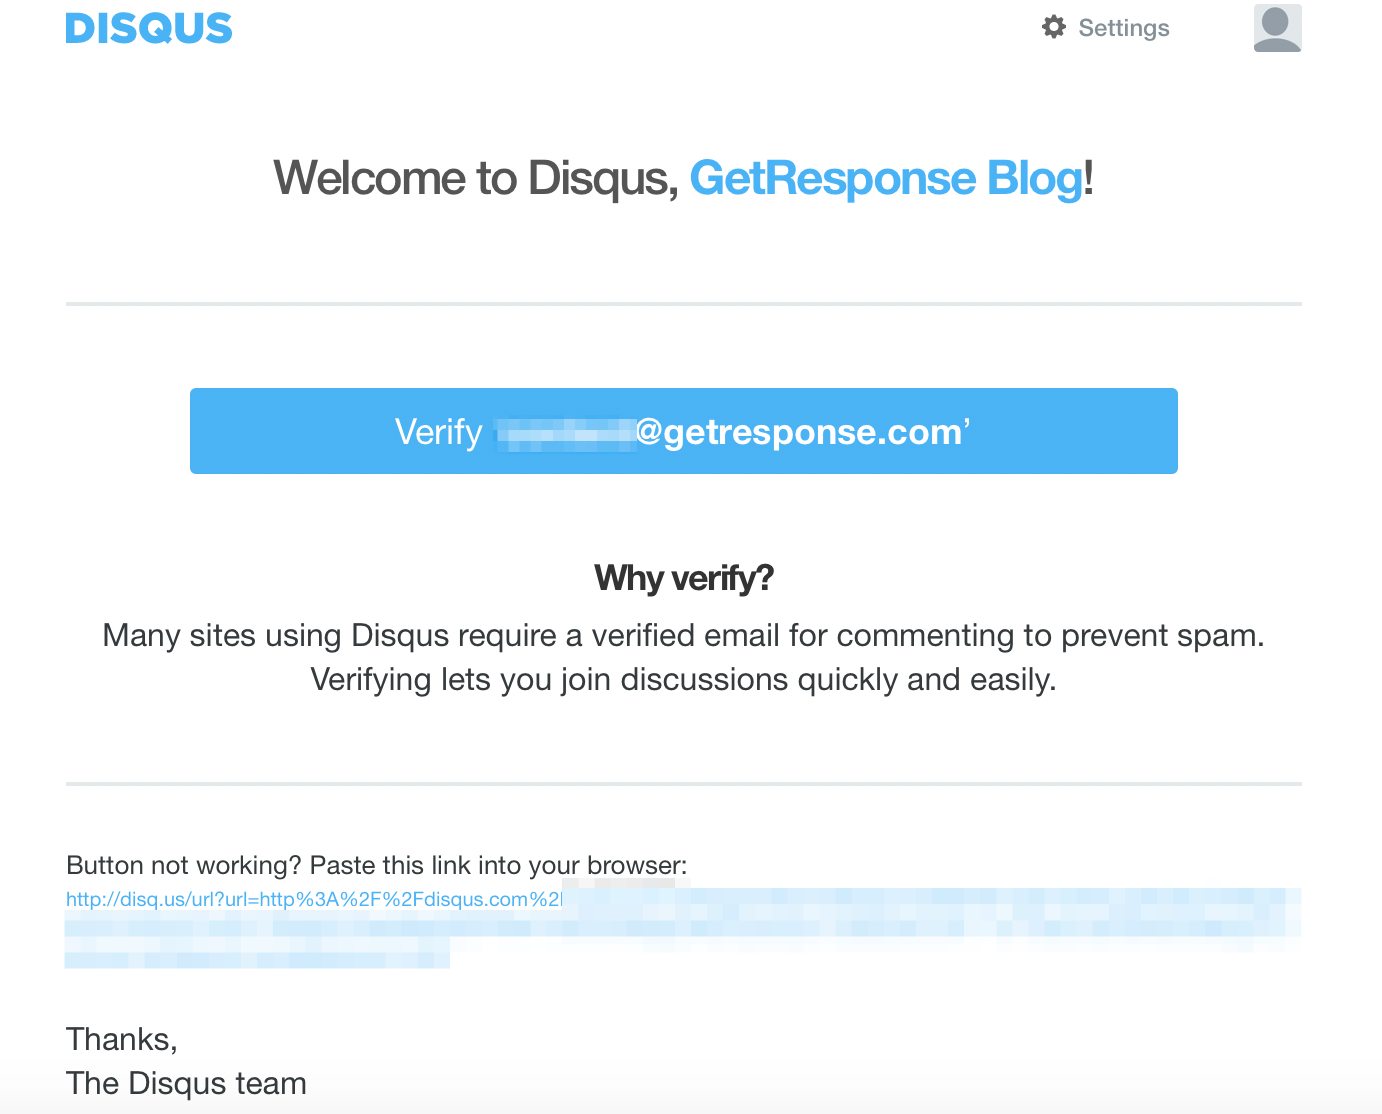 Email verification email template from Disqus.